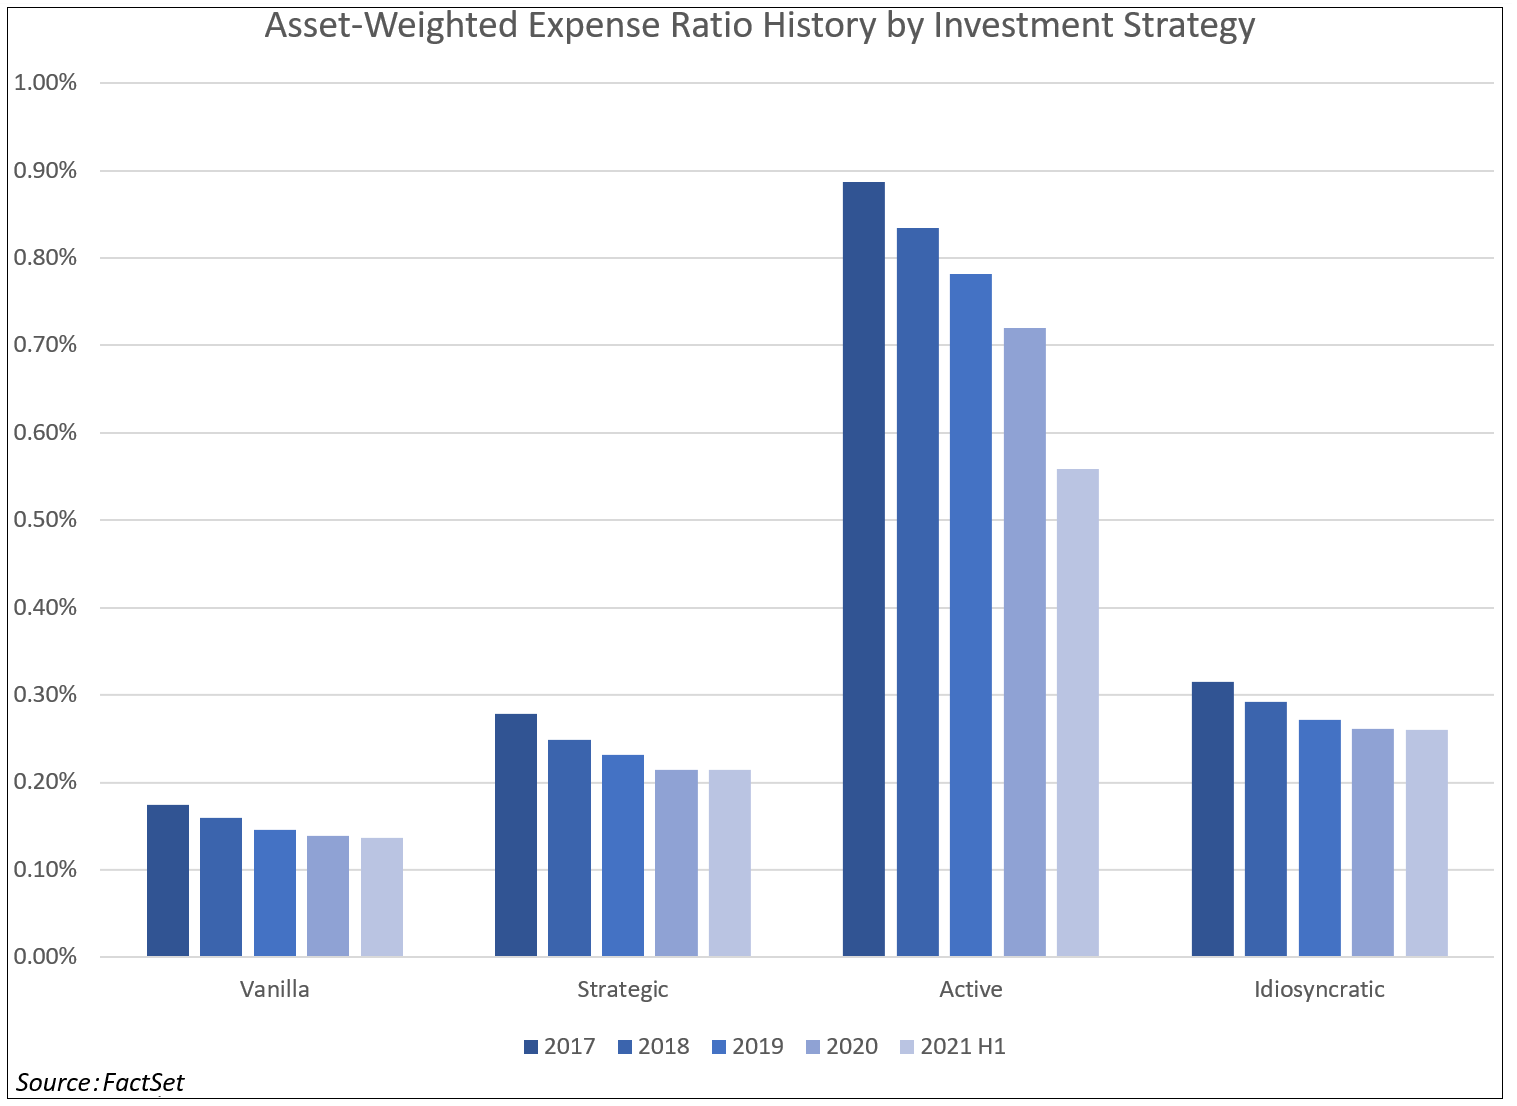 asset-weighted-expense-ratio-history-by-investment-strategy